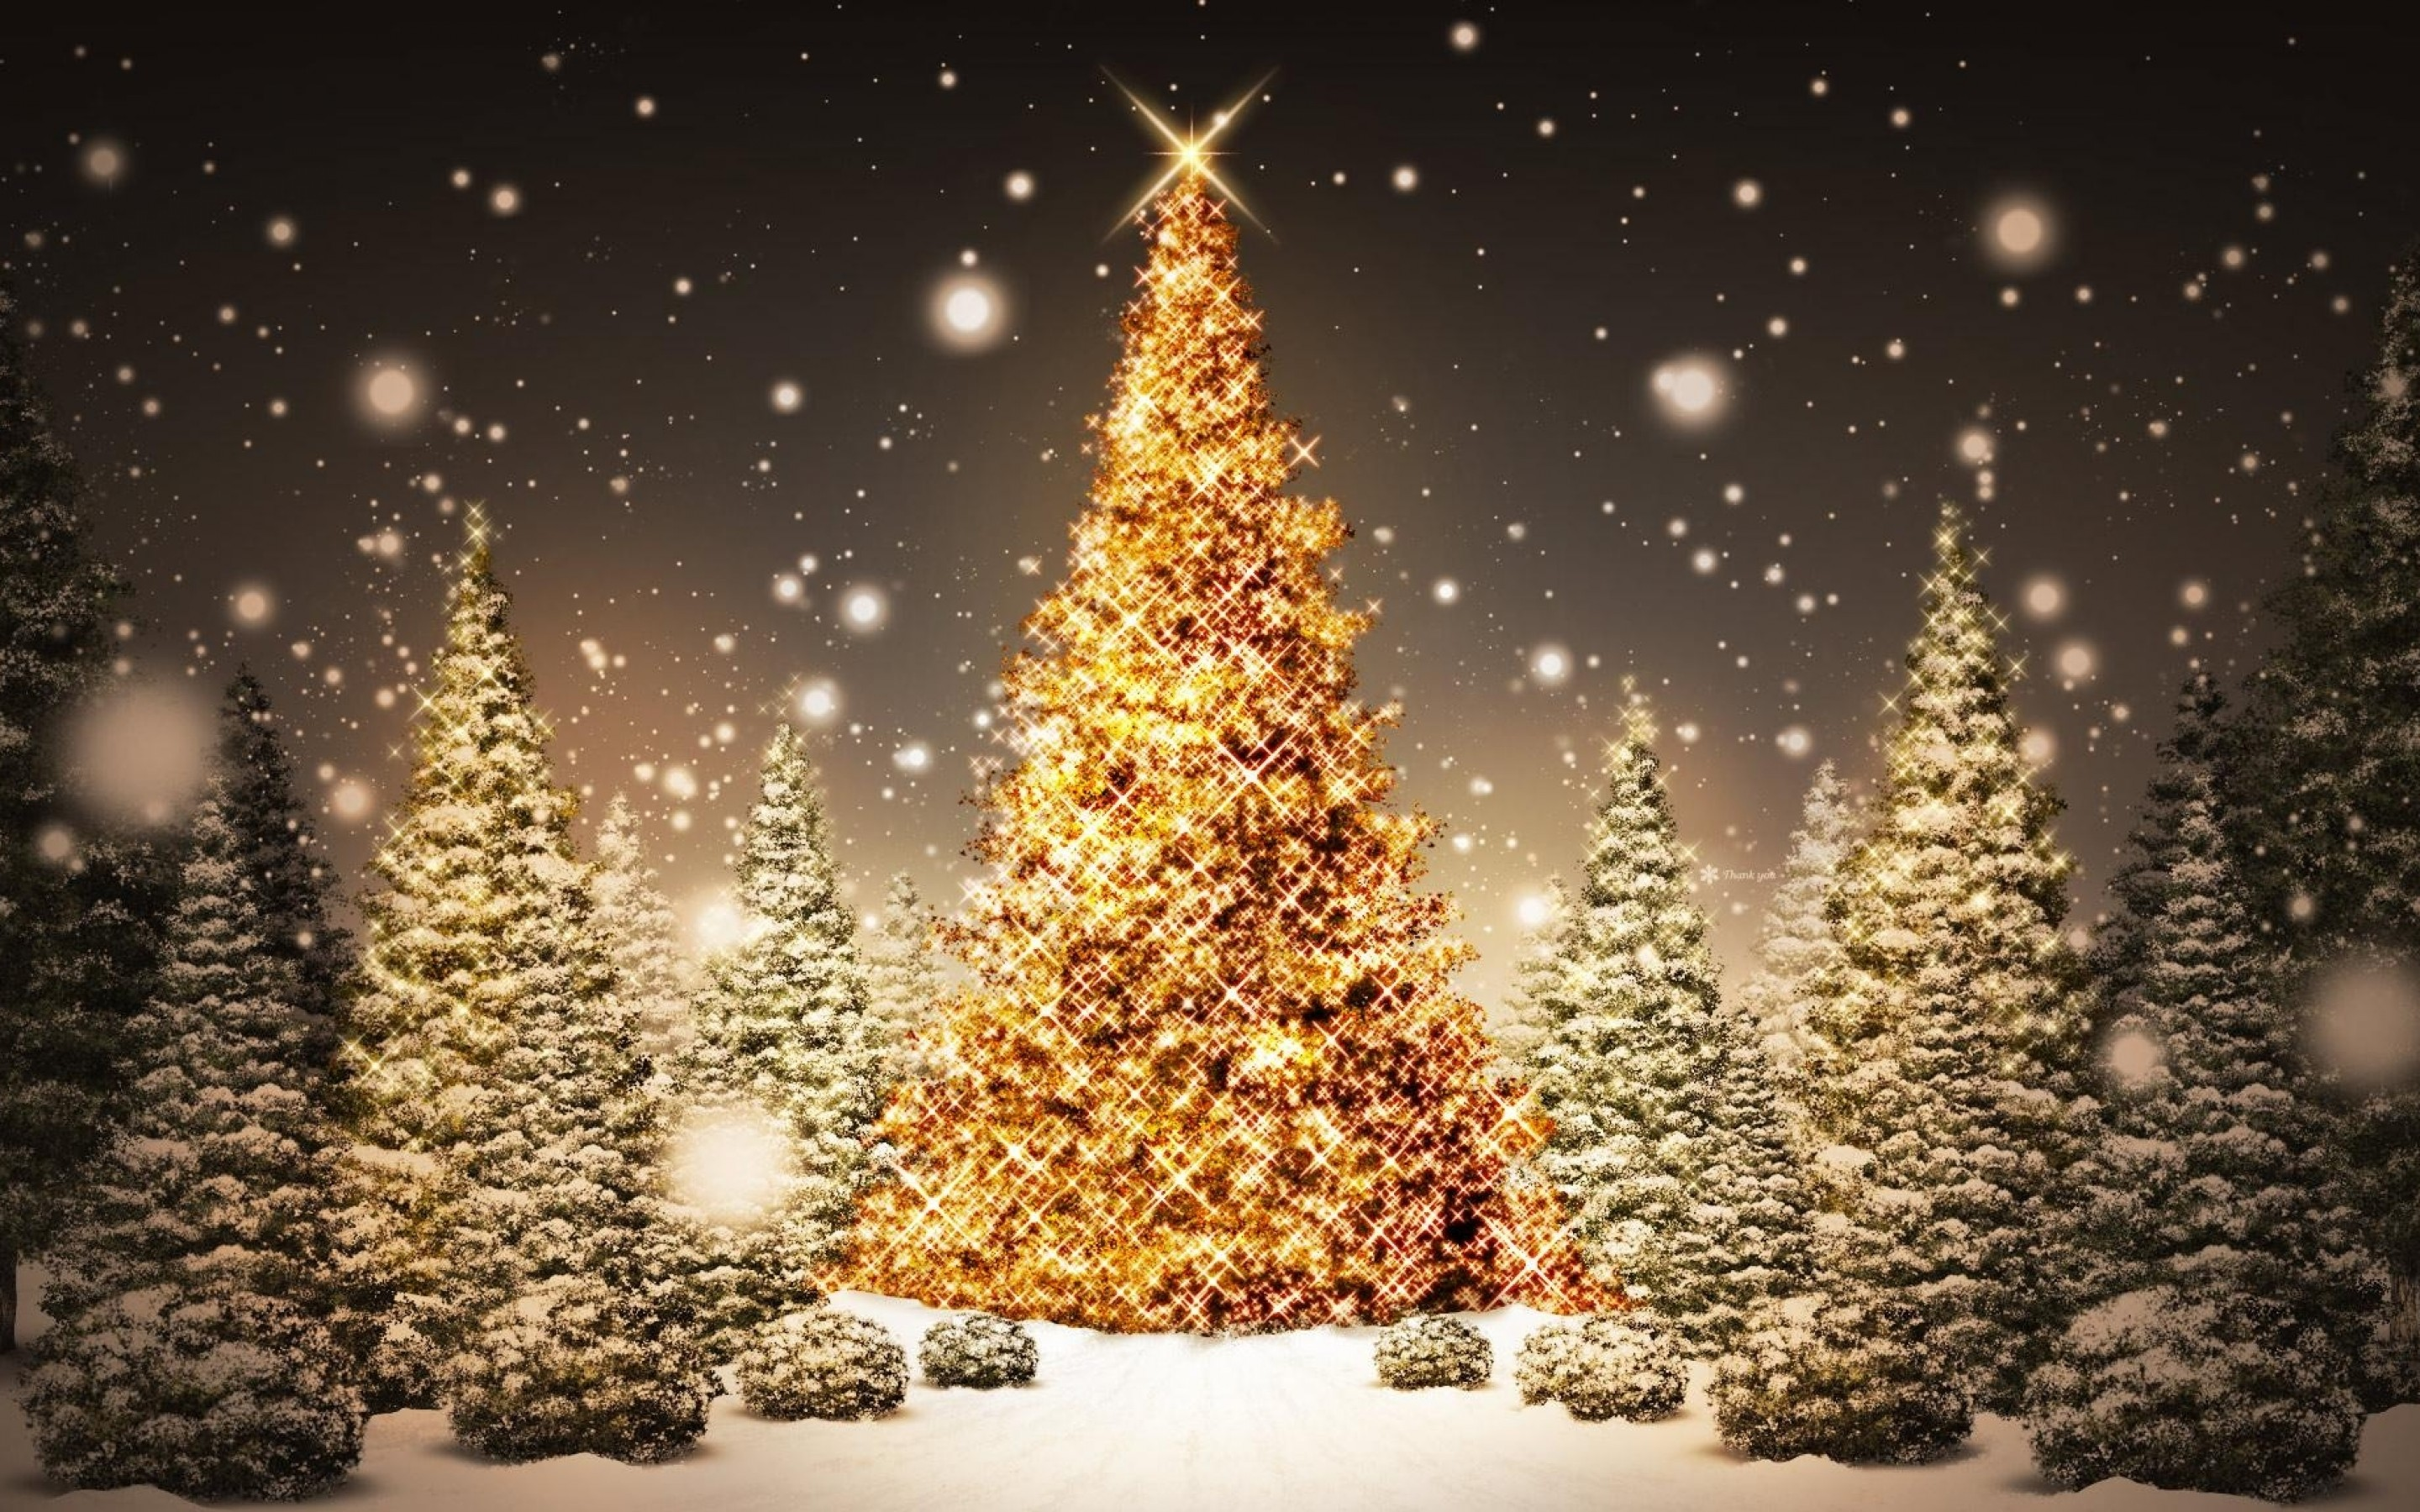 25 Super HD Christmas Wallpapers 2880x1800